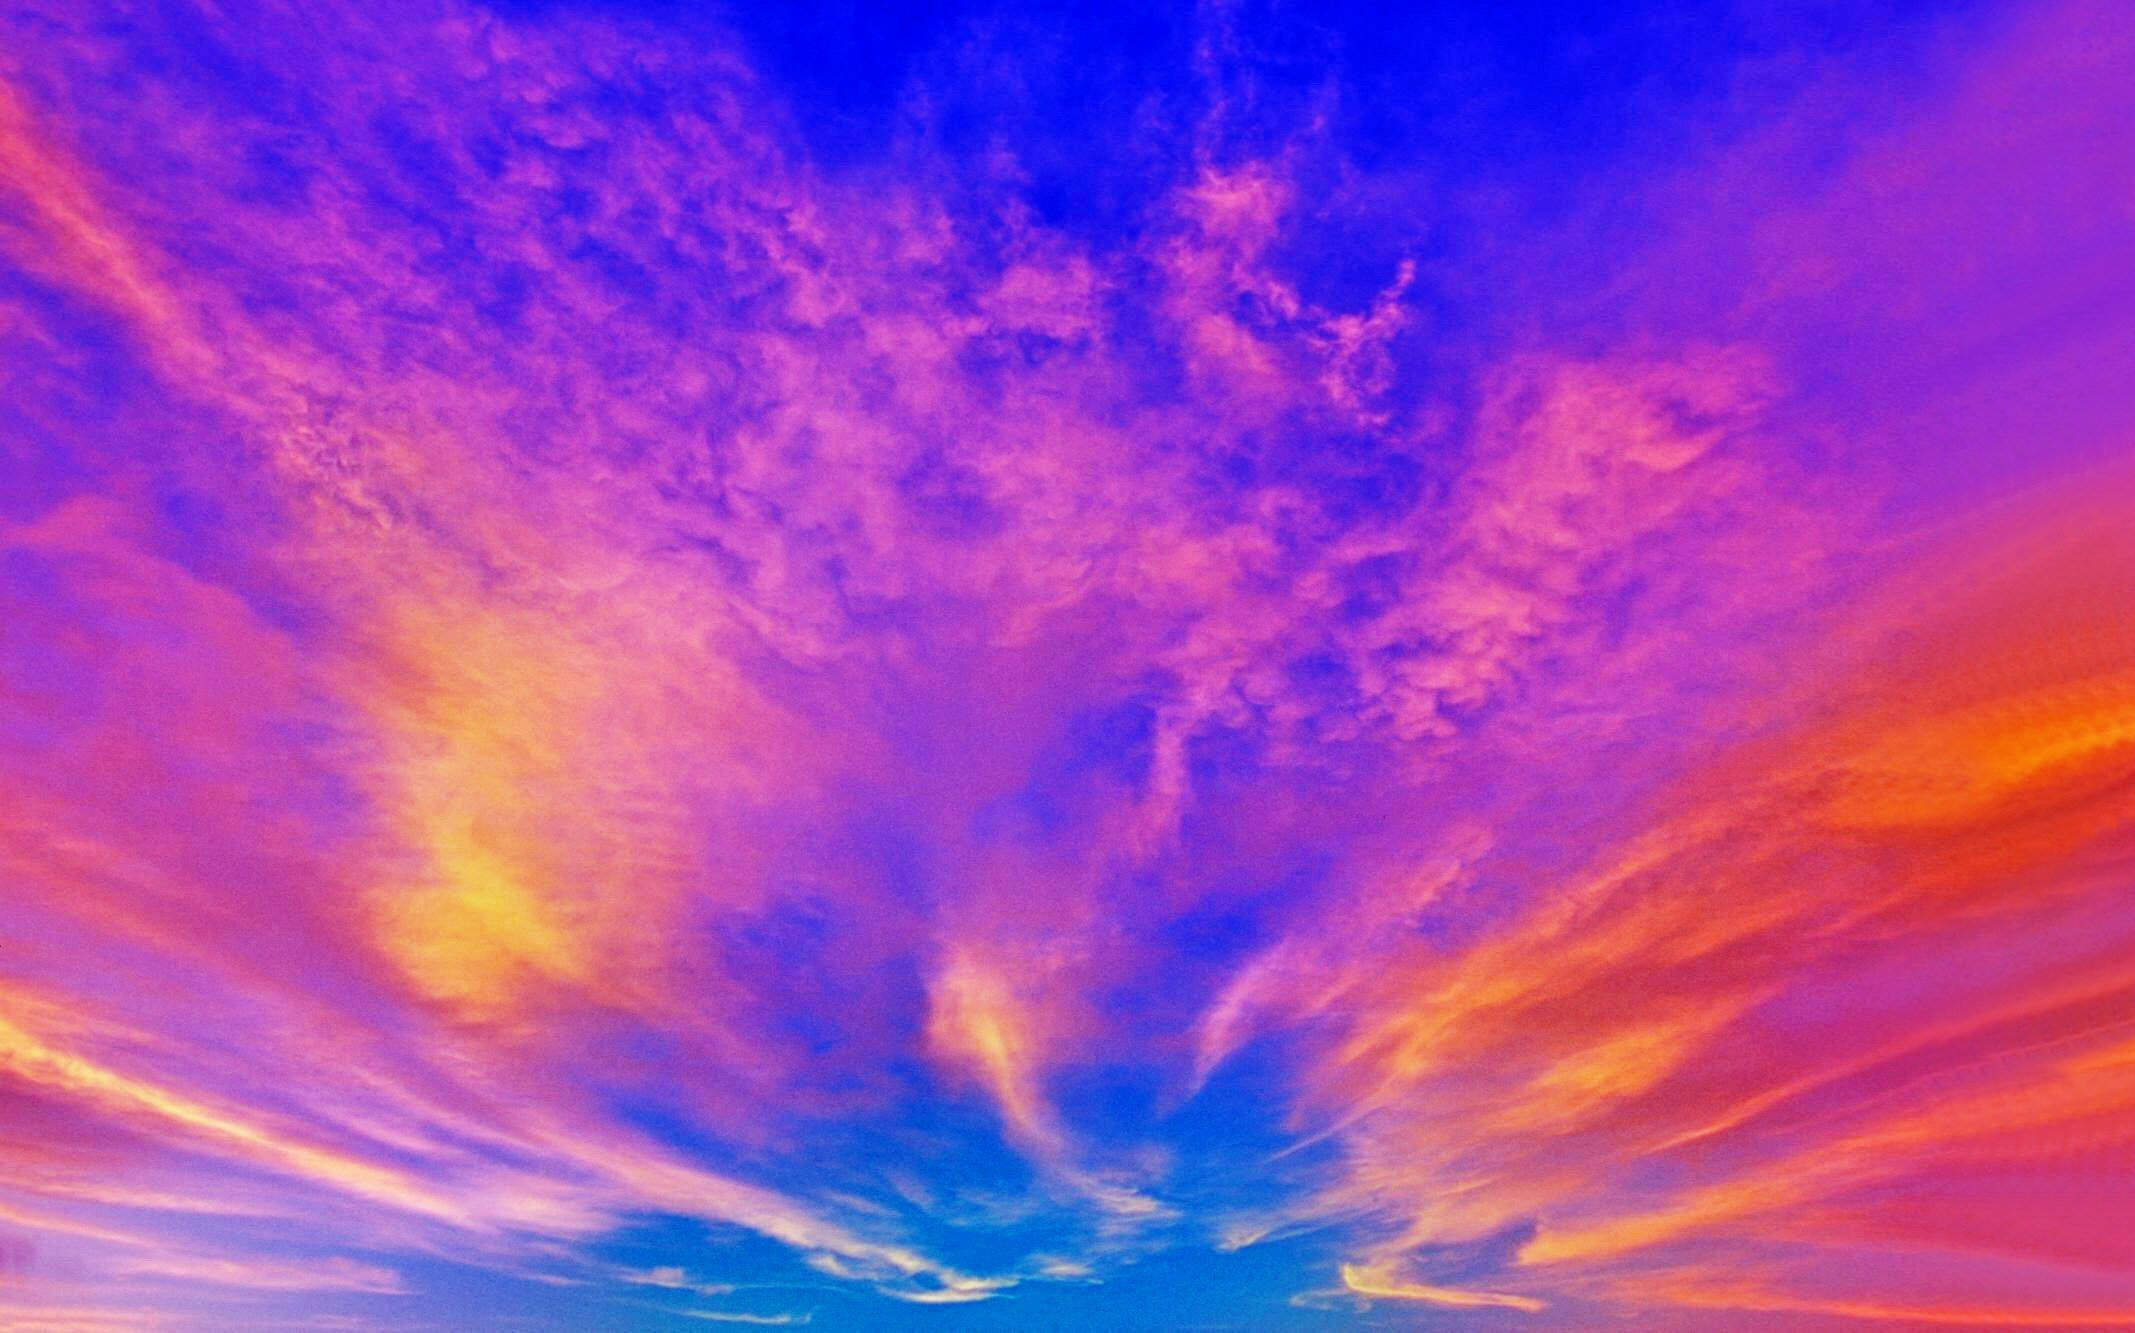 30 Hd Sky Wallpapers Backgrounds Images Design Trends Premium